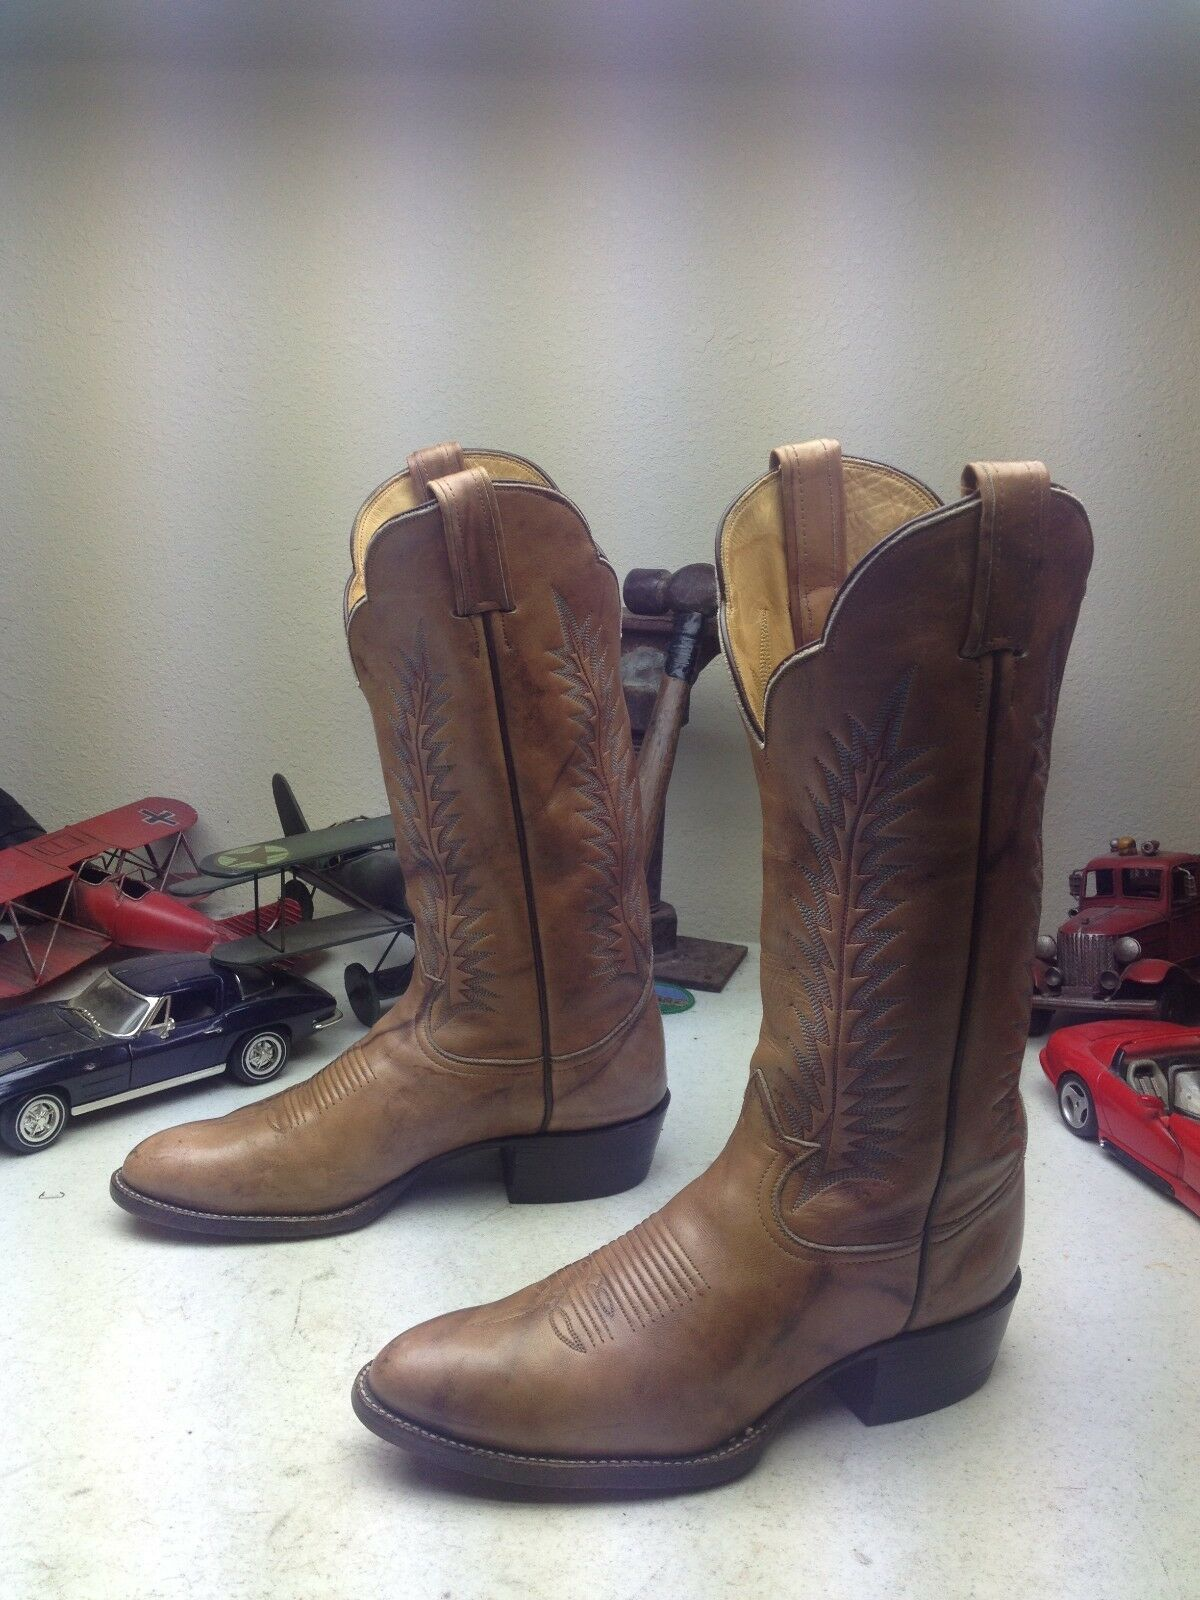 BLACK LABEL MADE IN USA VINTAGE BROWN LEATHER TONY LAMA BUCKAROO BOOTS 8.5 D